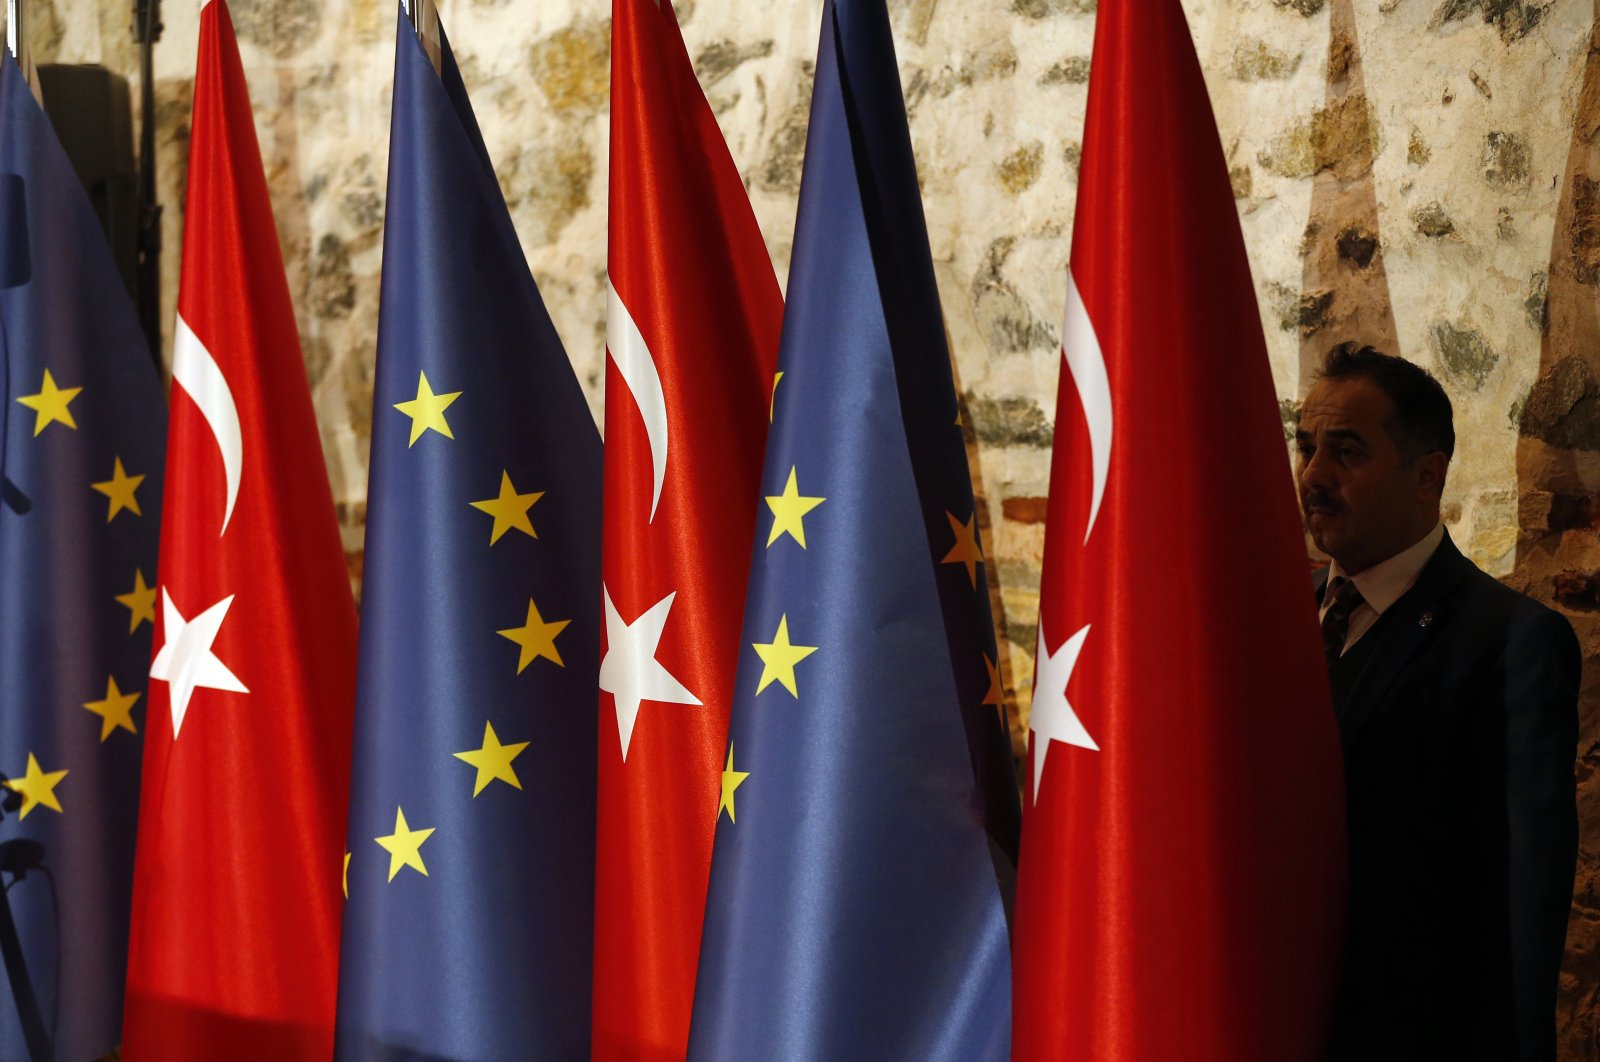 An official adjusts the flags of Turkey and the EU prior to the start of a high-level meeting between the EU and Turkey in Istanbul, Feb. 28, 2019. (AP Photo)